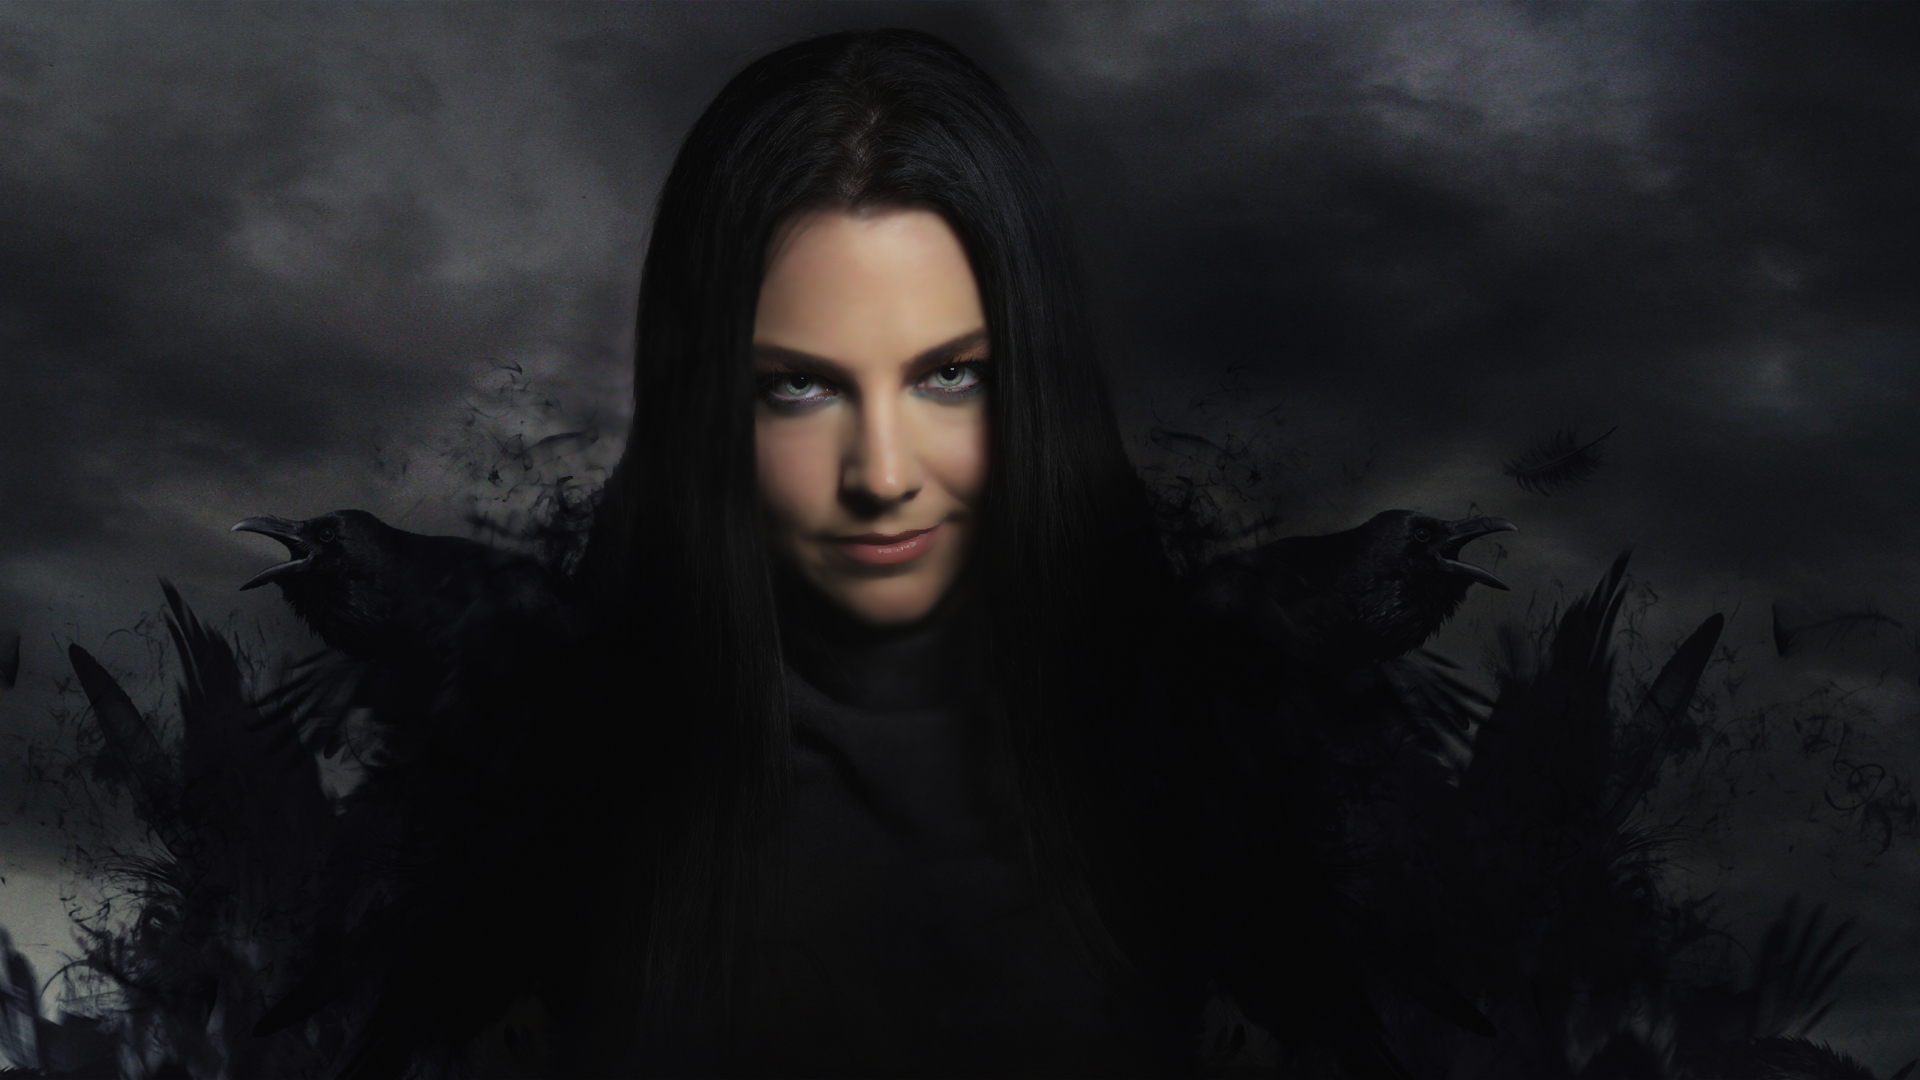 Amy Lee wallpapers for desktop